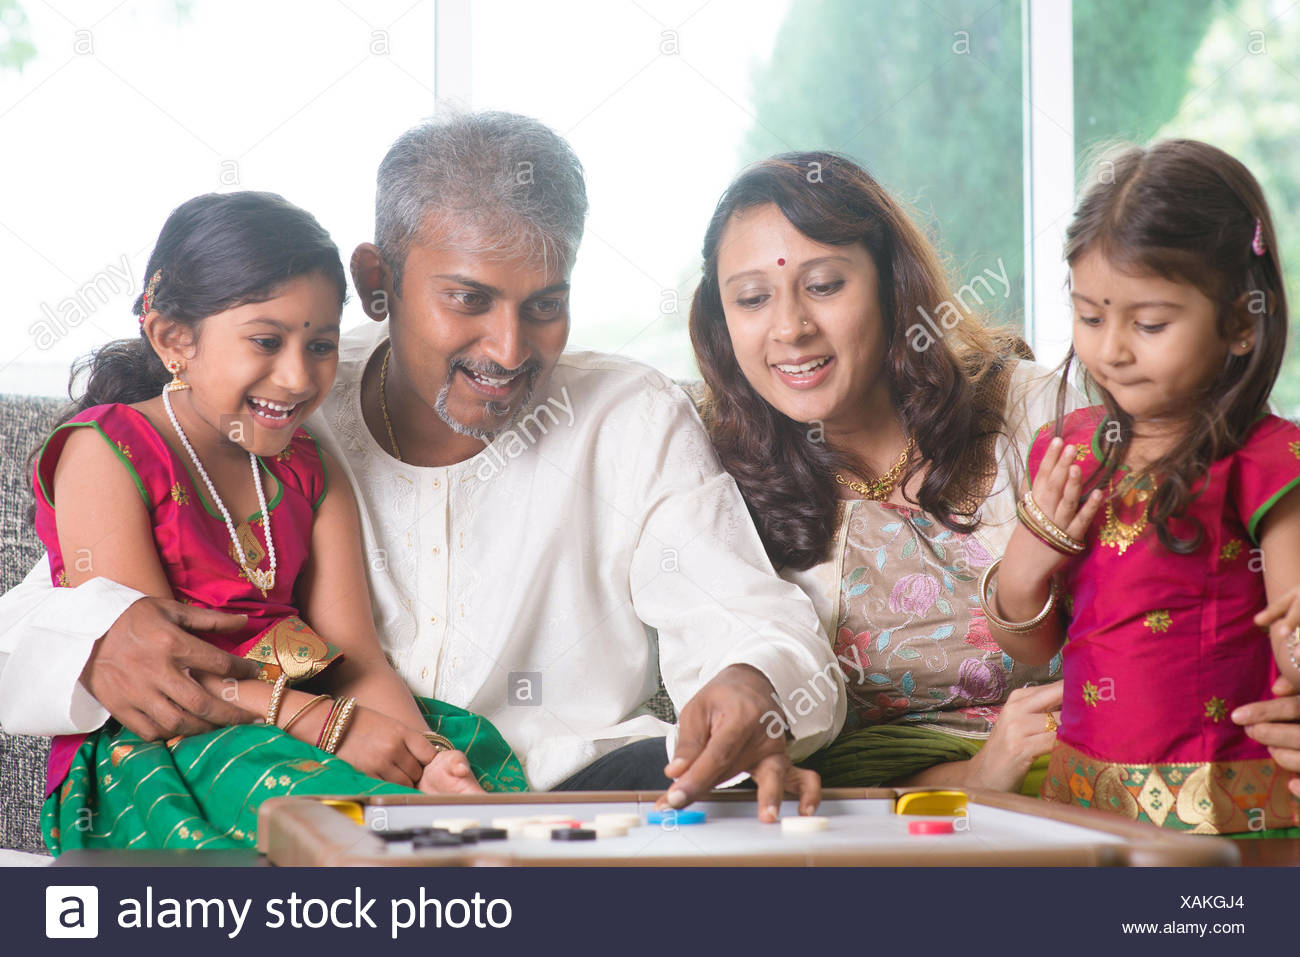 Indian family playing carrom game Stock Photo: 281942588 - Alamy